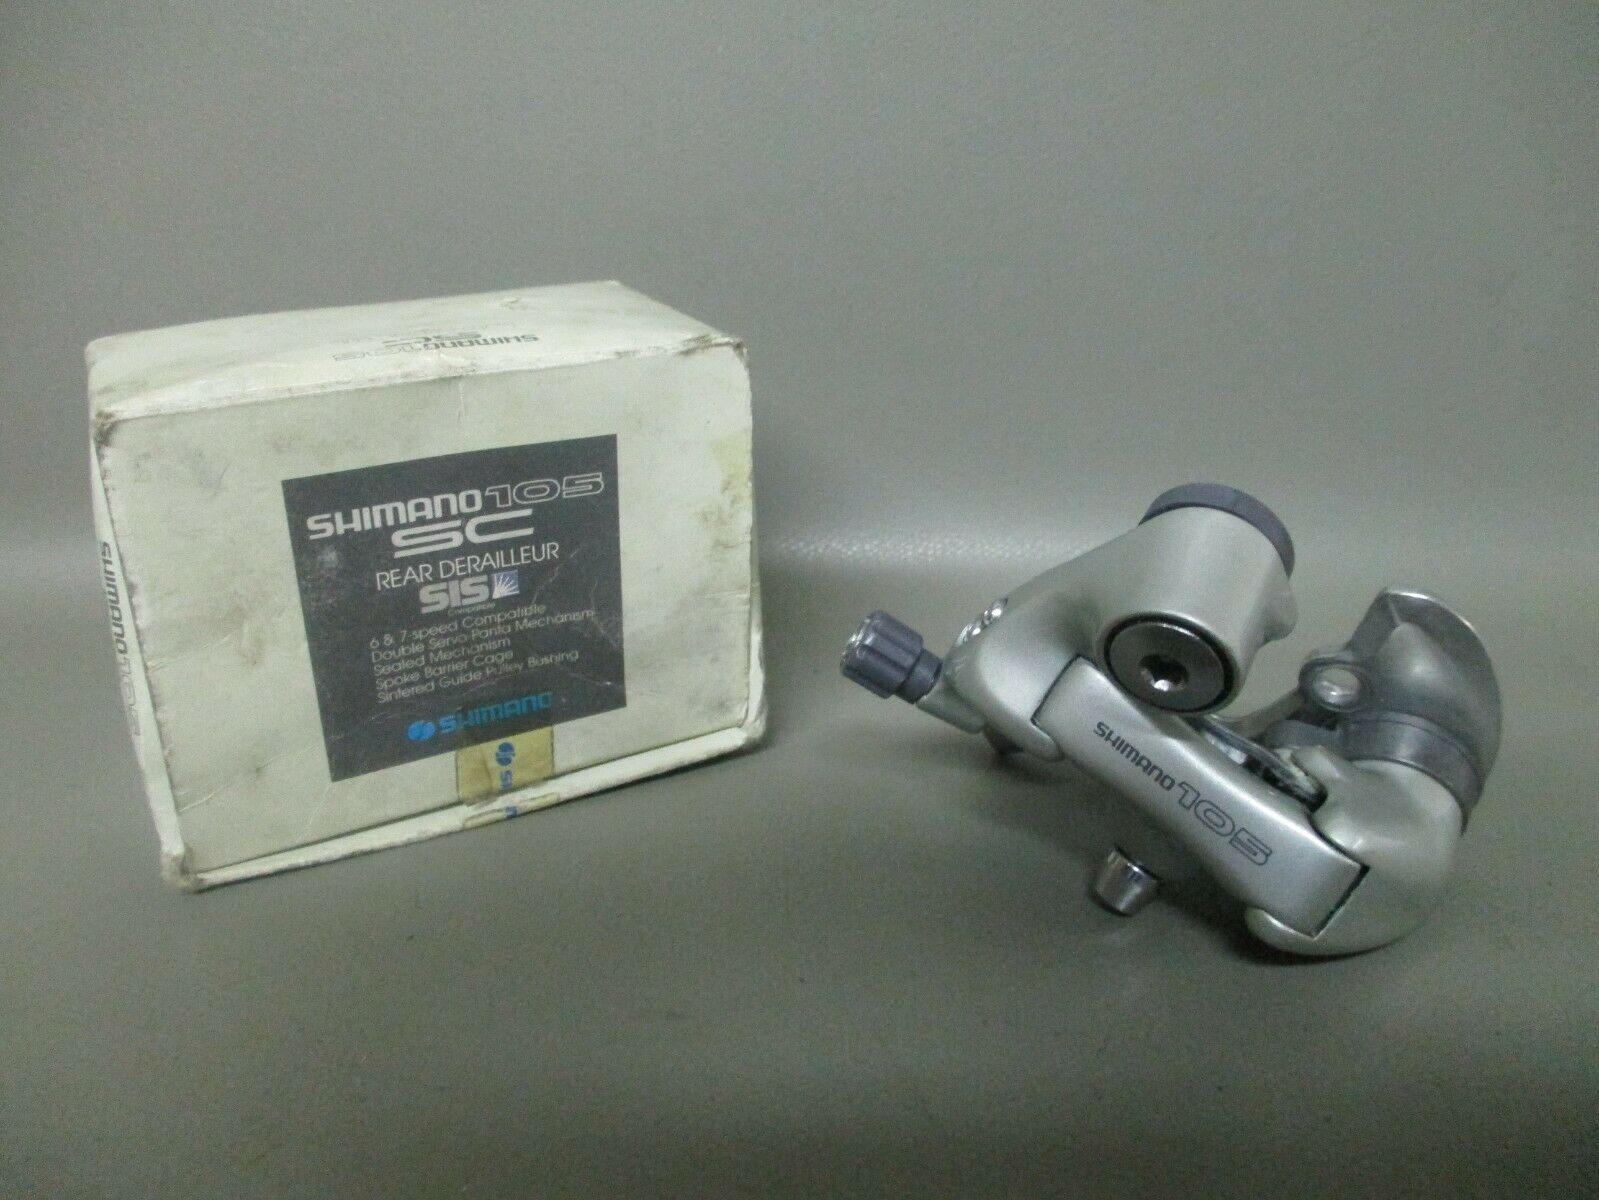 NOS Shimano 105  SC 1055 series FD-1055 rear derailleur - 7s rear mechs - parts  welcome to order